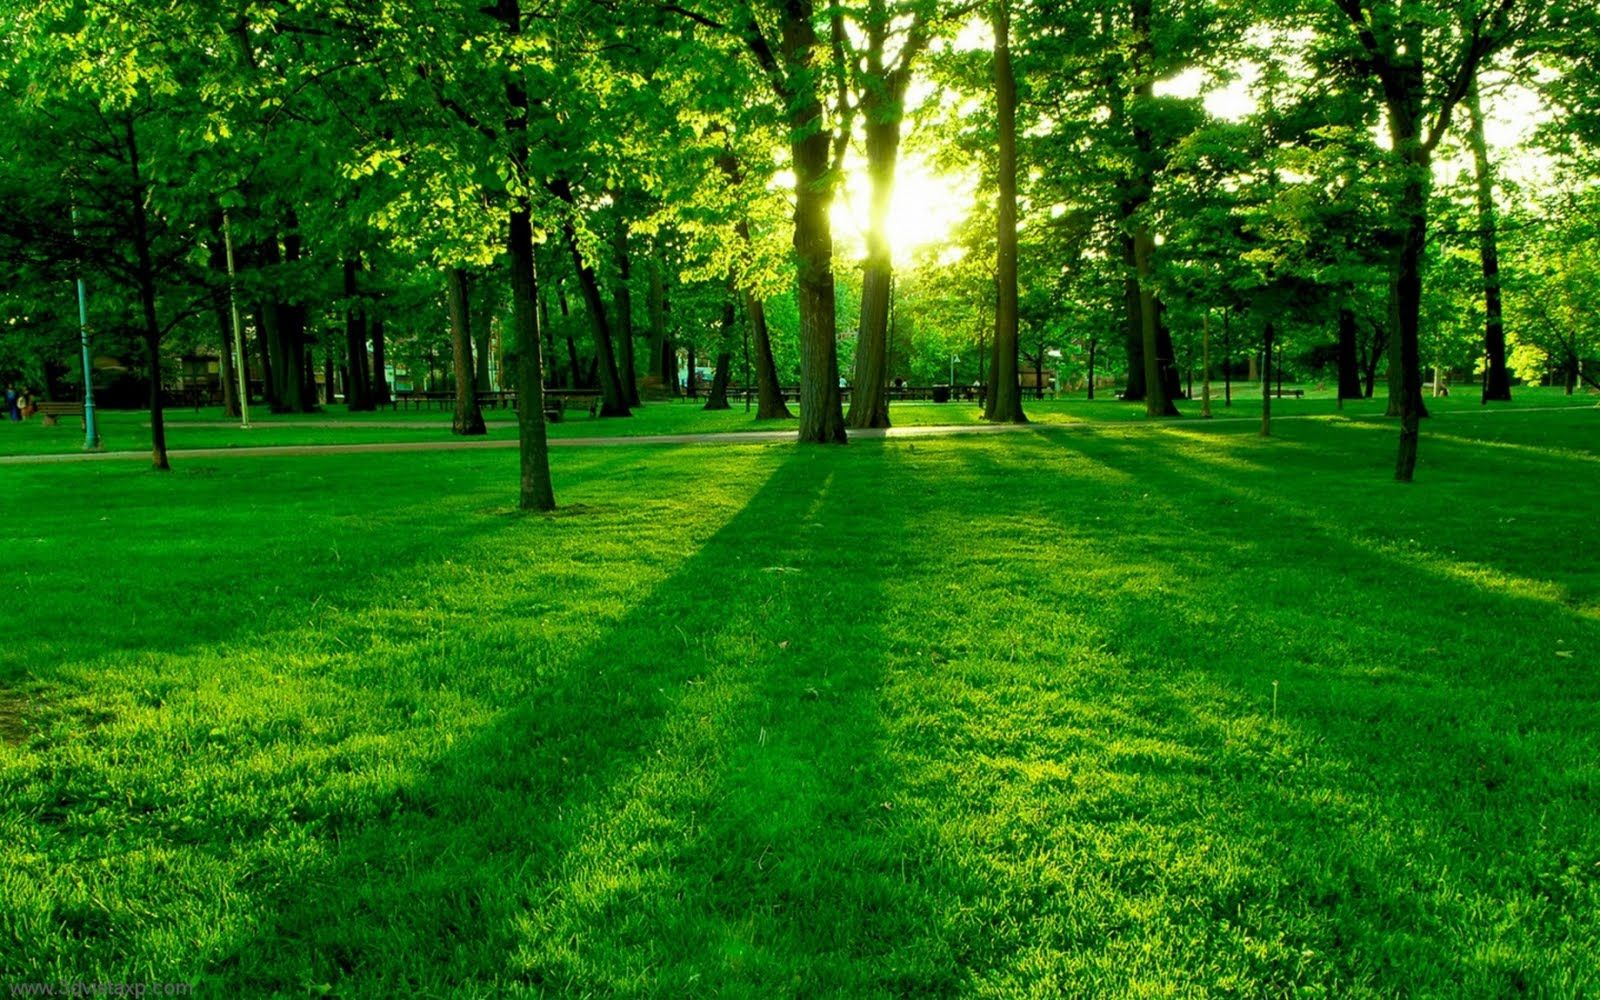 Green Nature Wallpapers Free For Desktop Backgrounds Green Nature Nature Wallpaper Green Paintings